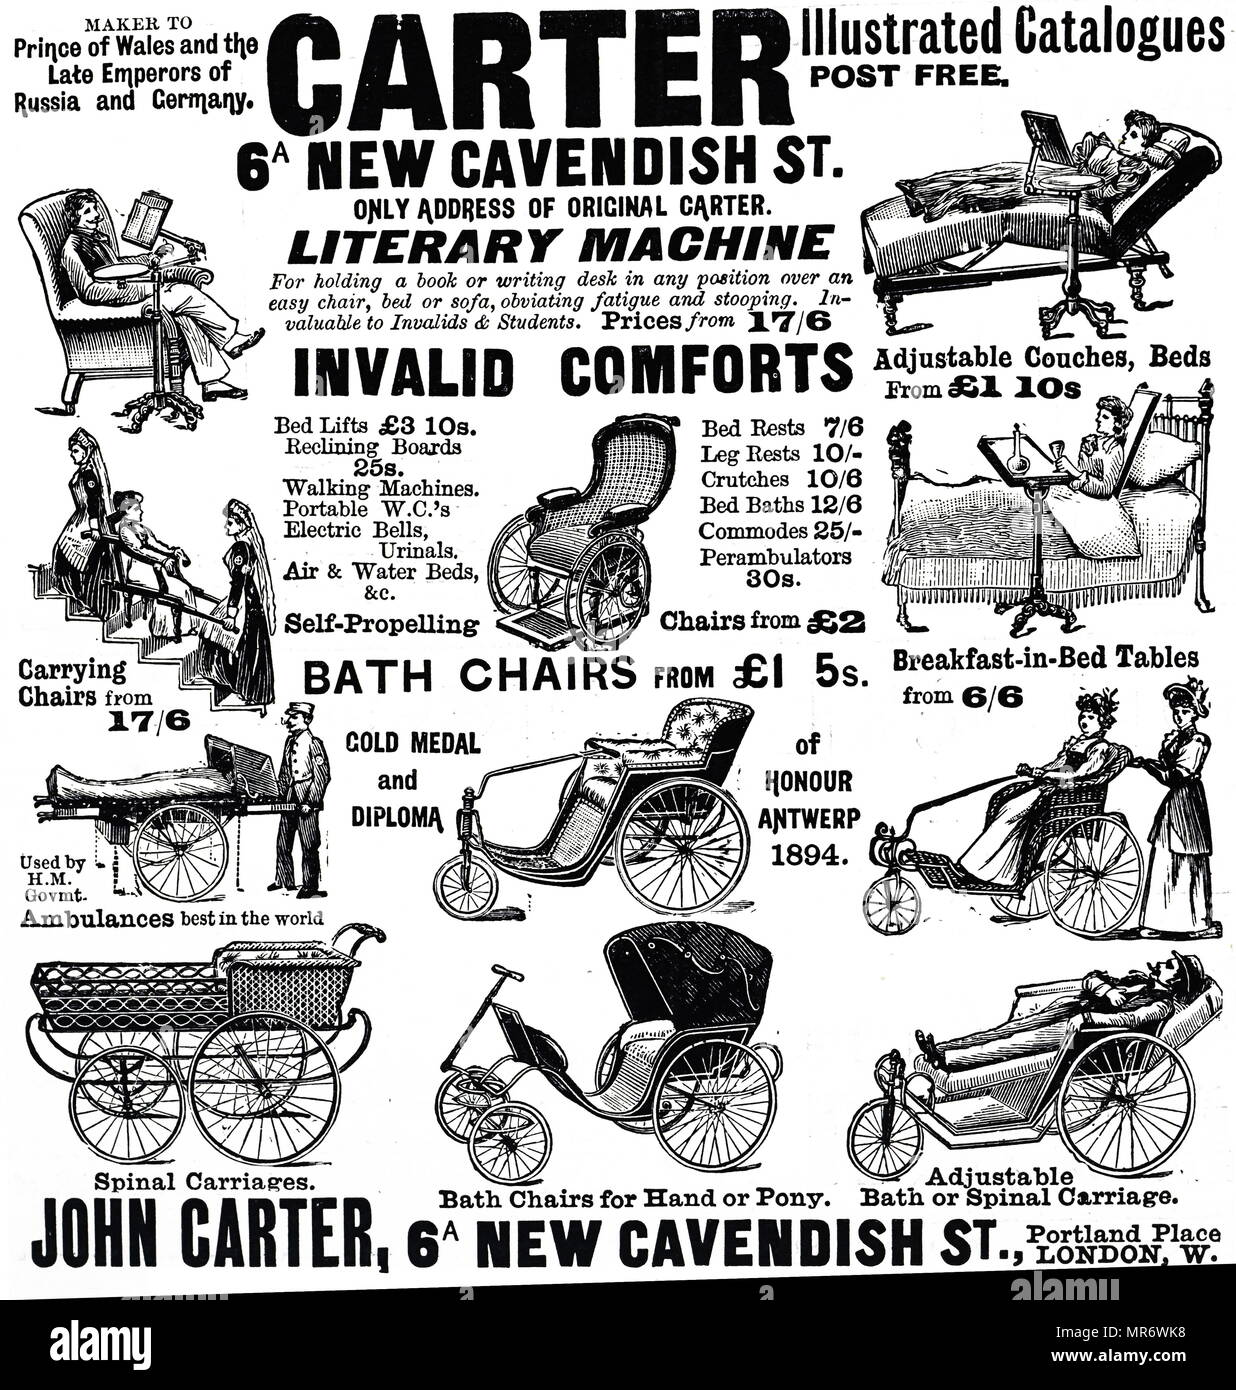 The Carter illustrated catalogue for invalid comforts. Dated 19th century - Stock Image